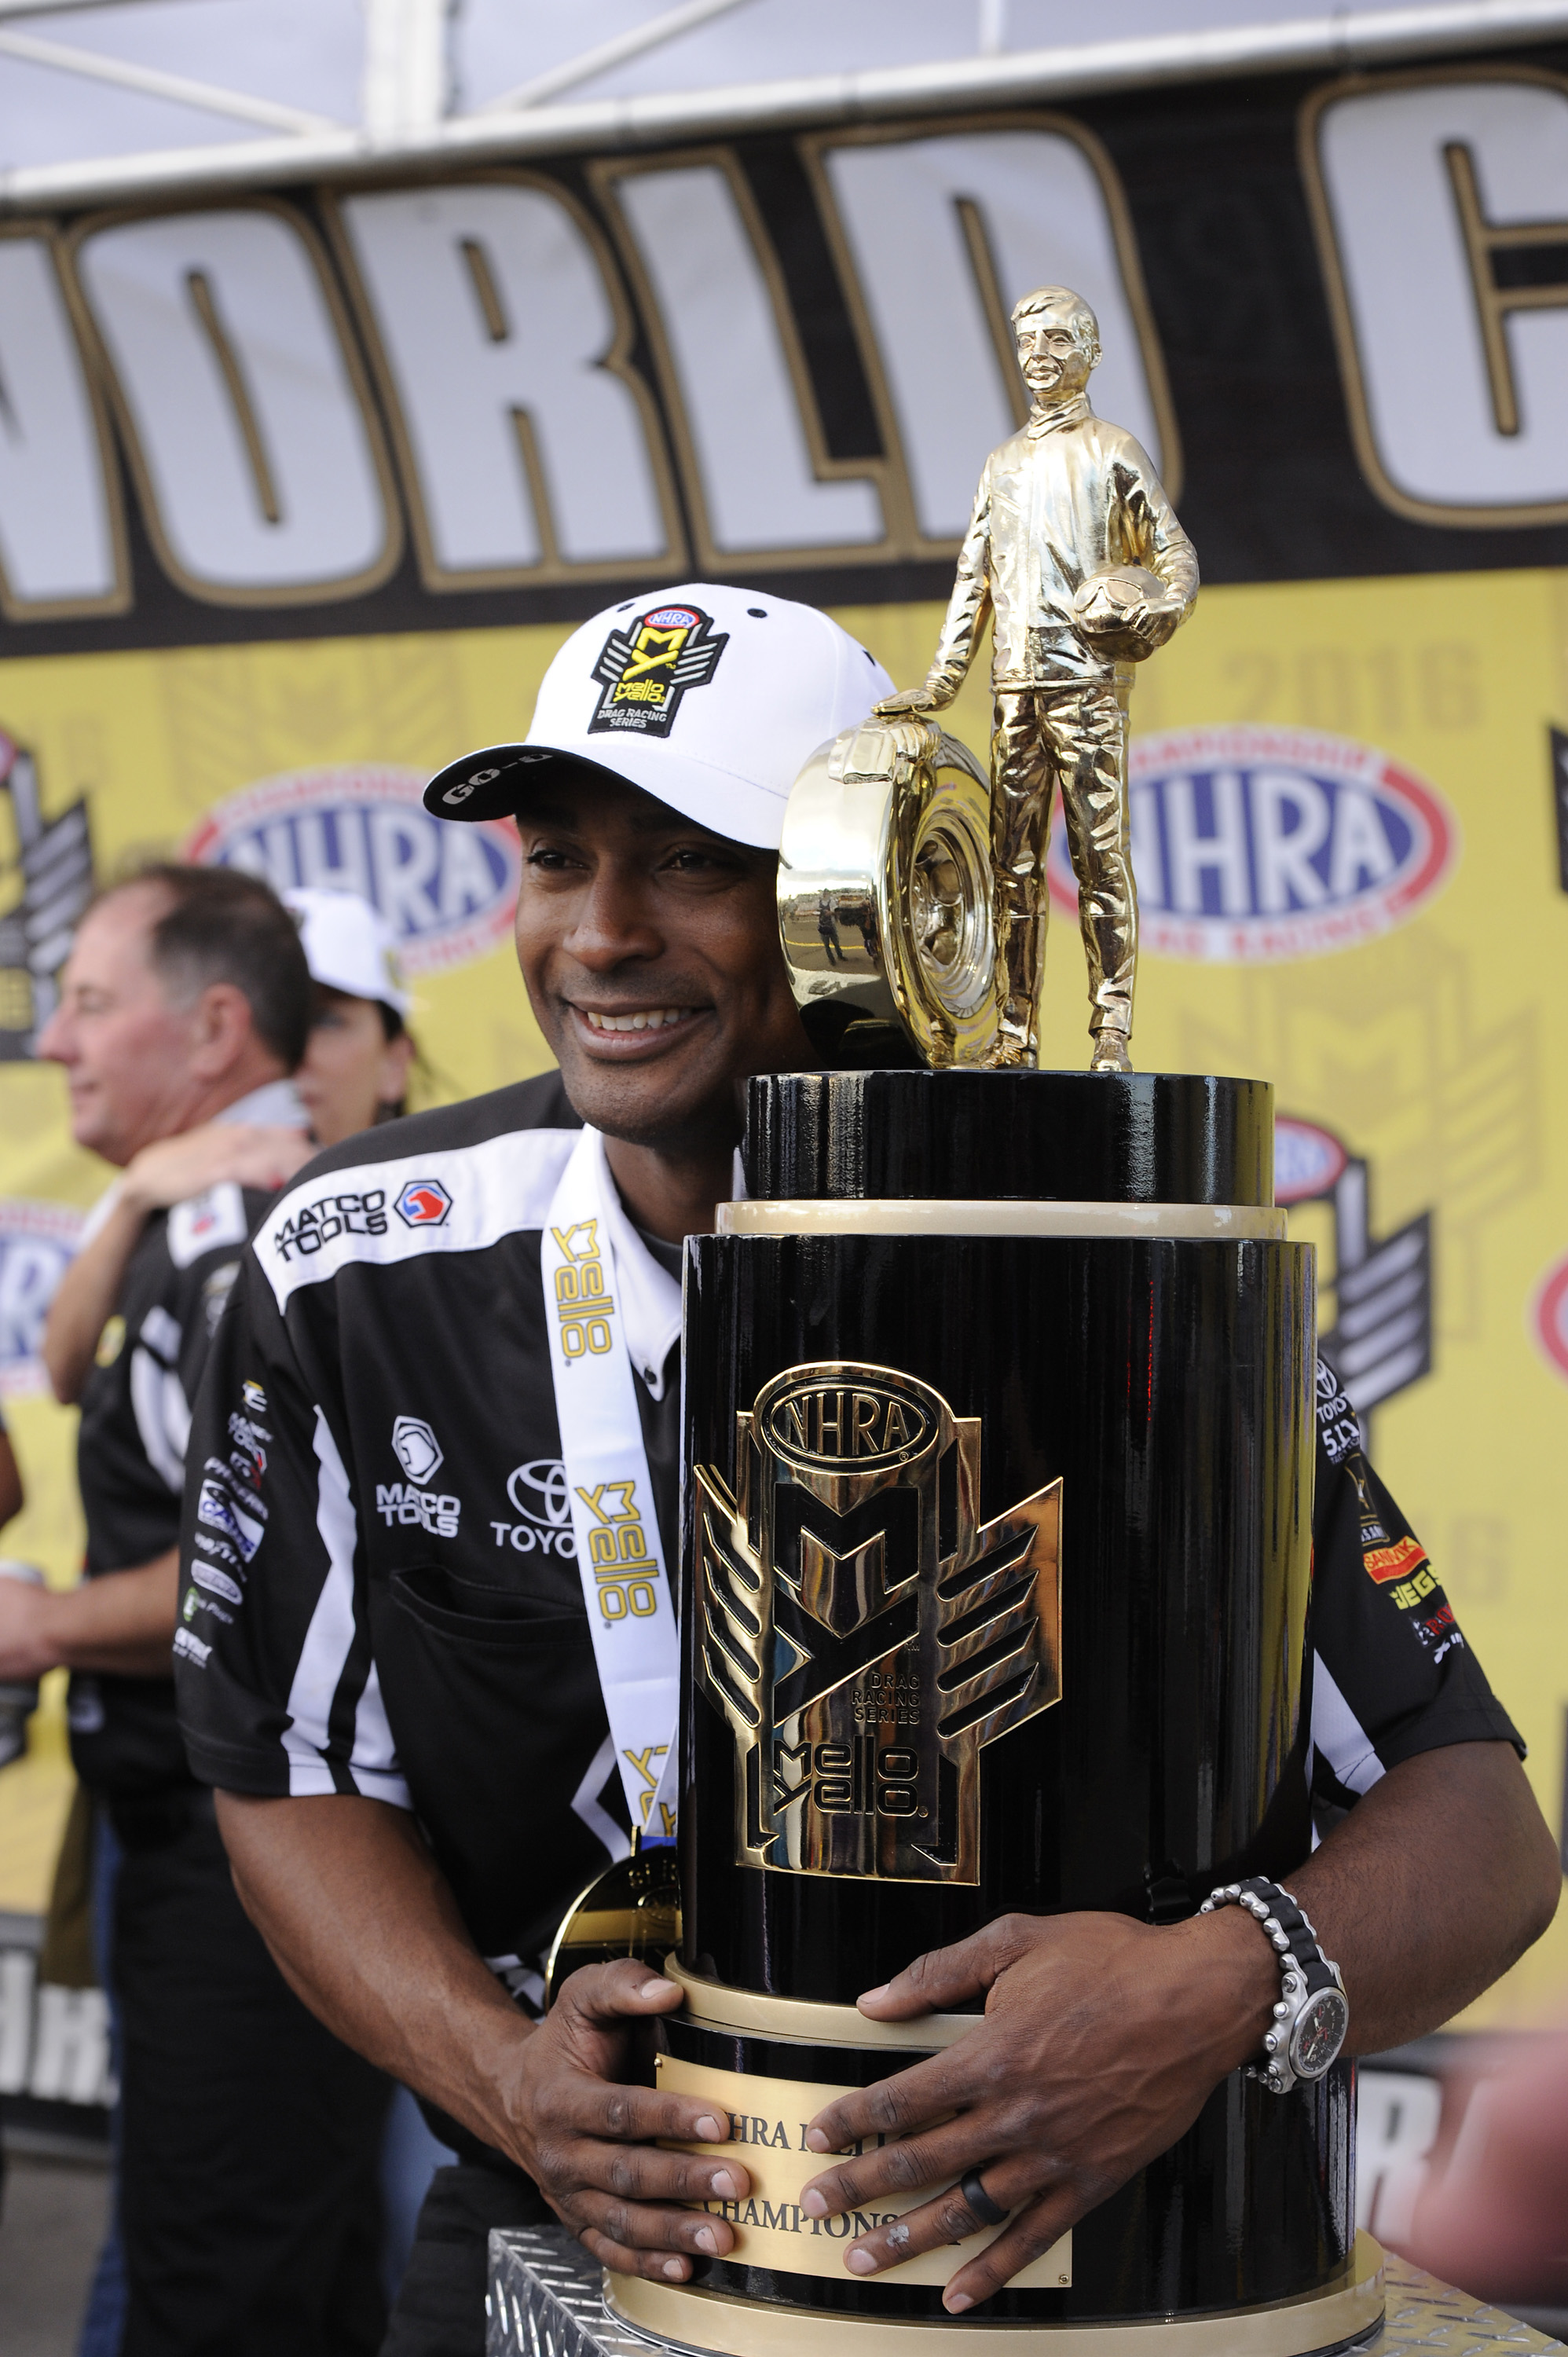 nhra star brown to drive pace car for pennzoil 400 presented by jiffy lube pit stop radio news. Black Bedroom Furniture Sets. Home Design Ideas